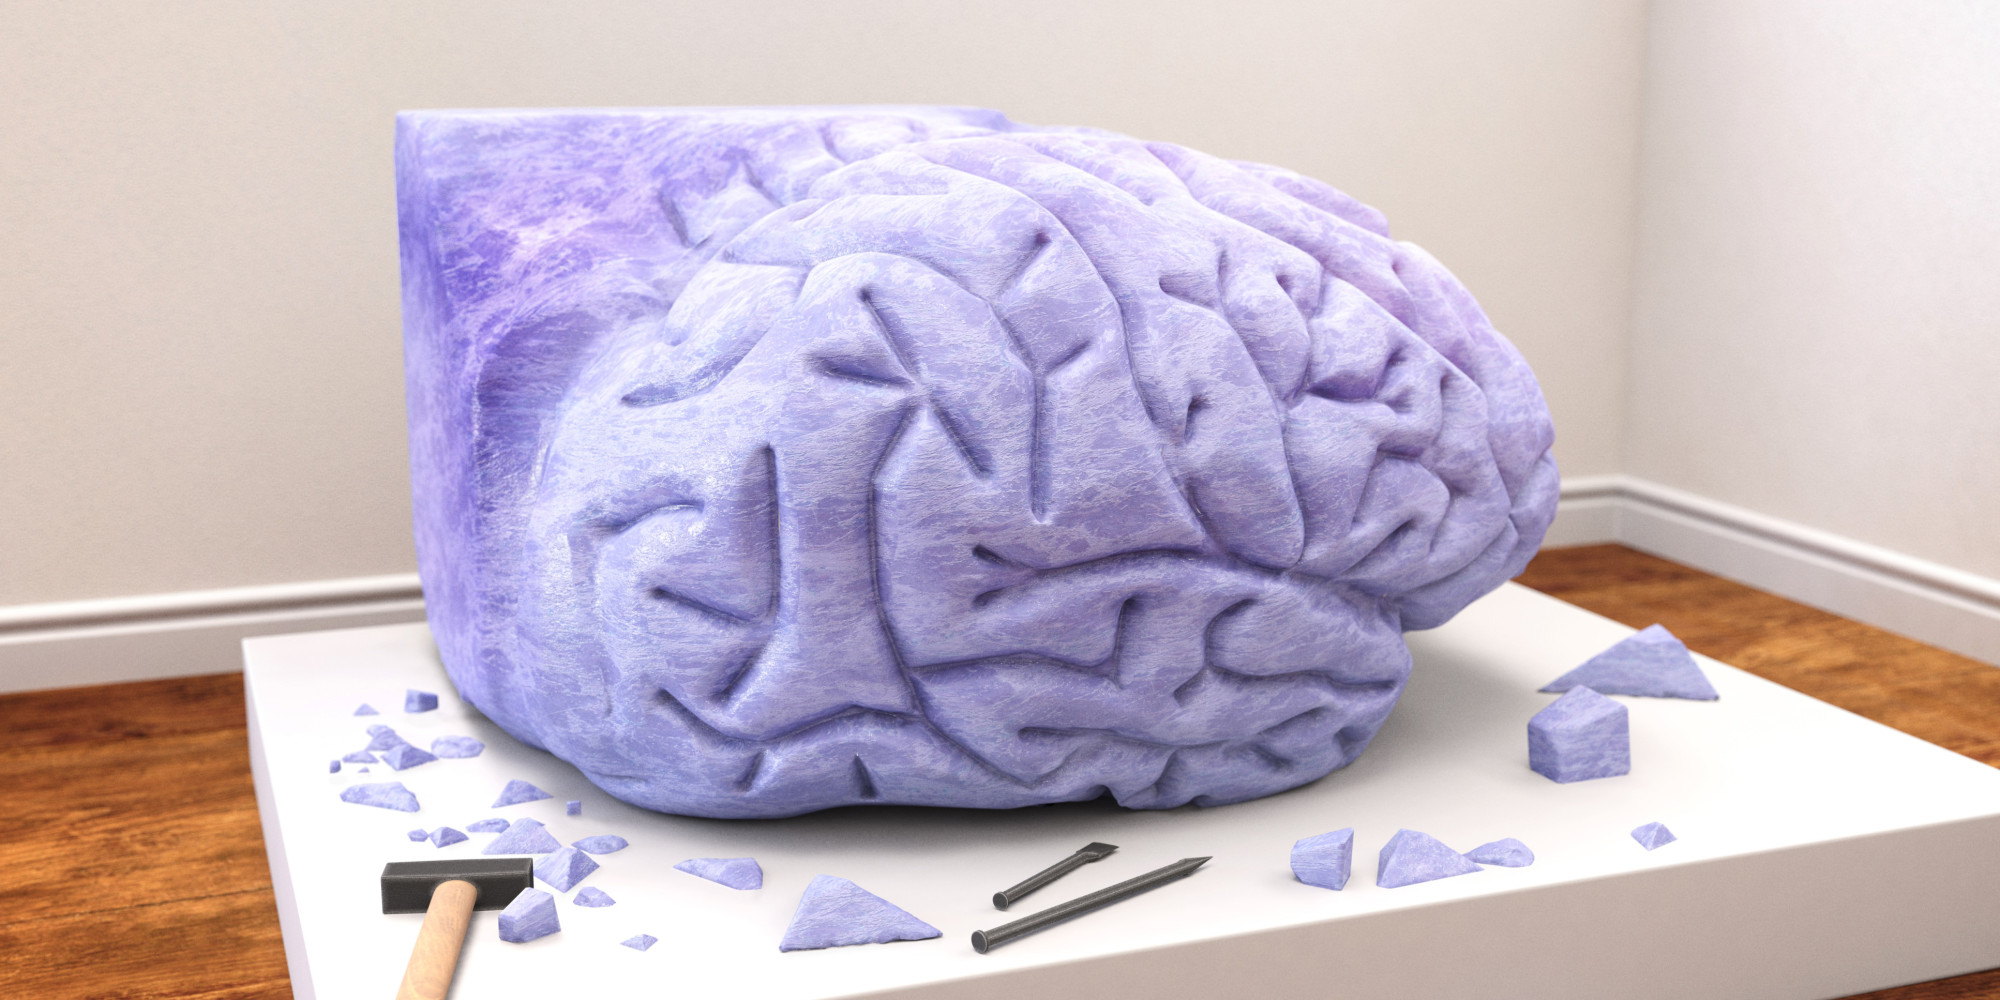 How Producing Art Can Keep Our Brains Functioning